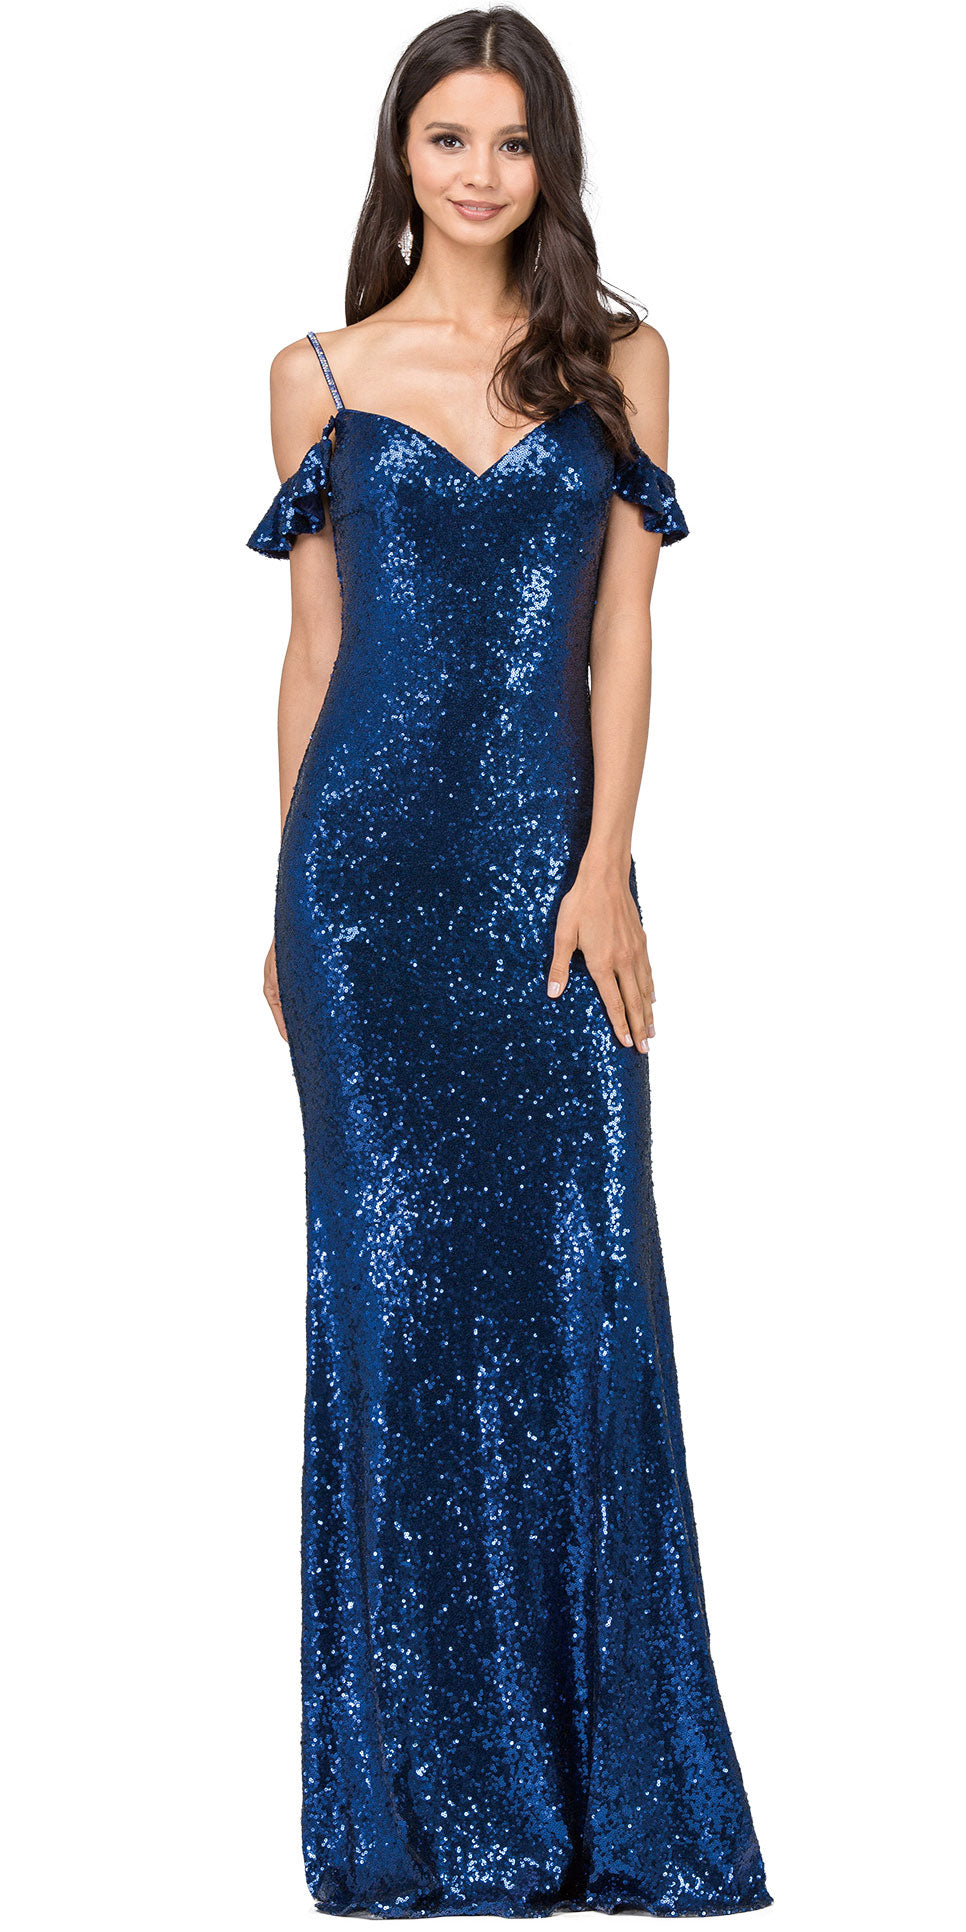 Main image of Cold Shoulder Sweetheart Neck Long Sequins Prom Dress